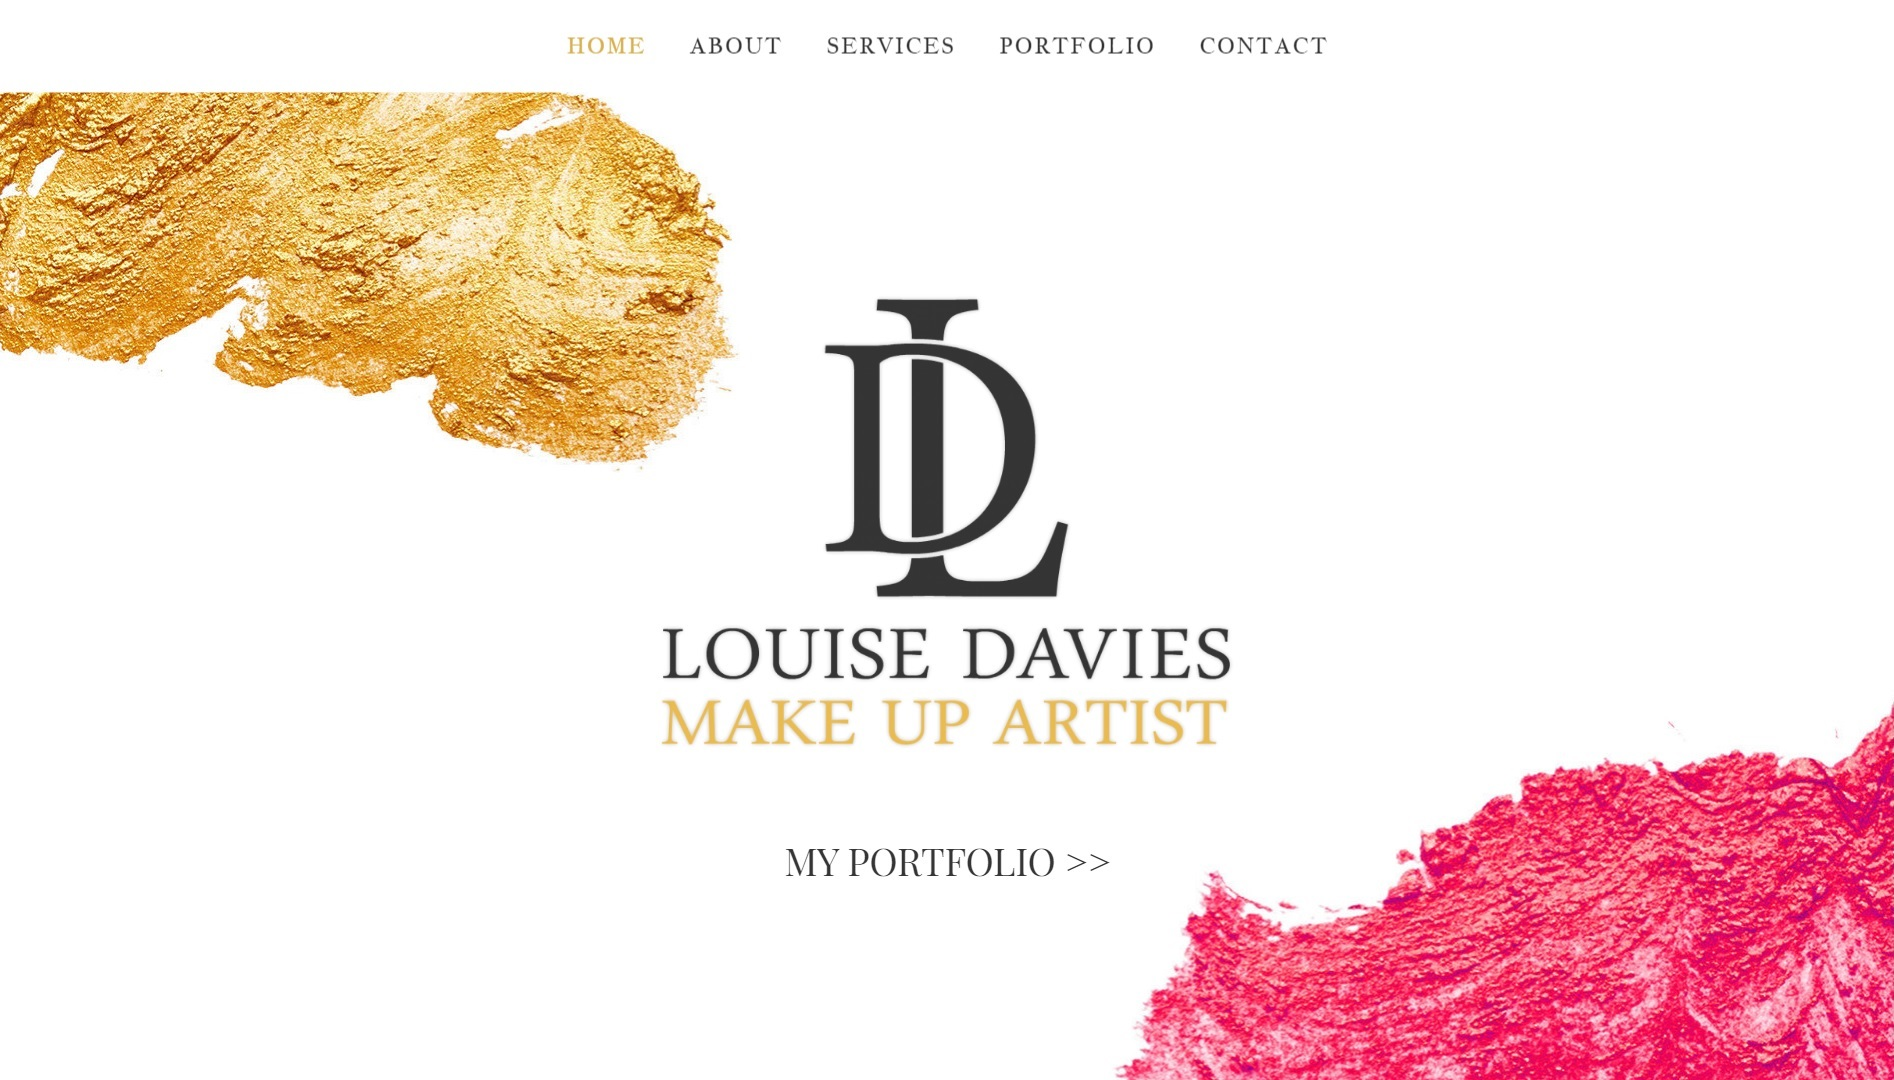 Web site design for louise davies, professional make up artist.